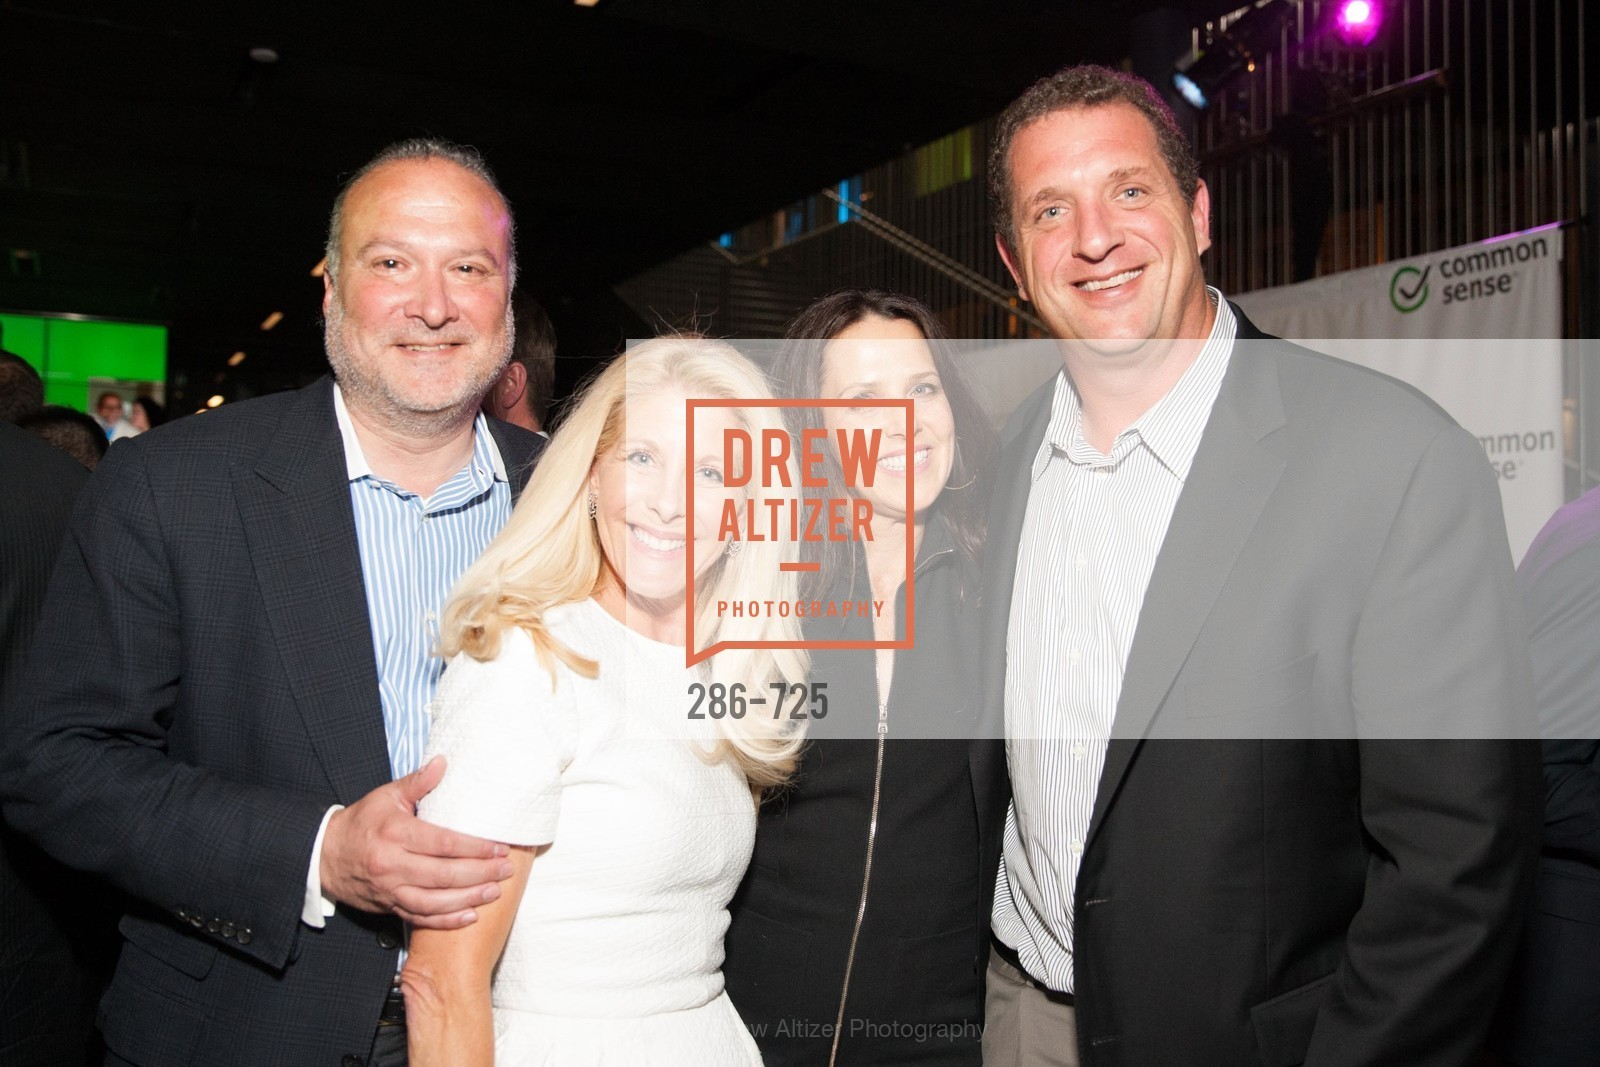 Robert Blum, Dana Blum, Megan Bargain, Eric Bargain, COMMON SENSE Media Awards 2015, US, May 13th, 2015,Drew Altizer, Drew Altizer Photography, full-service agency, private events, San Francisco photographer, photographer california